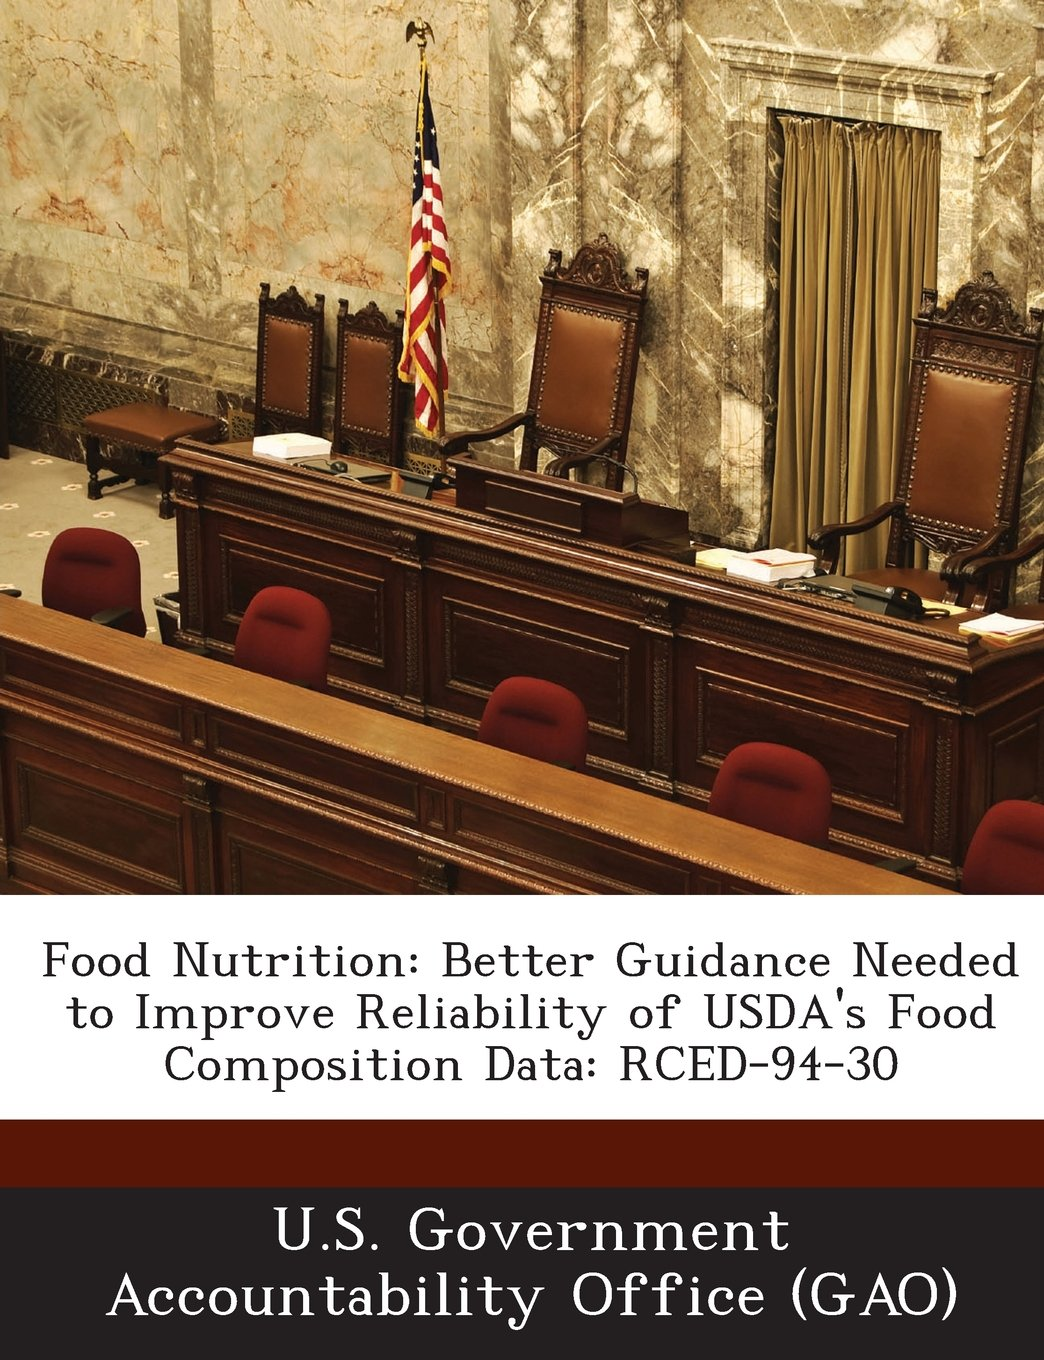 Food Nutrition: Better Guidance Needed to Improve Reliability of USDA's Food Composition Data: RCED-94-30 ebook